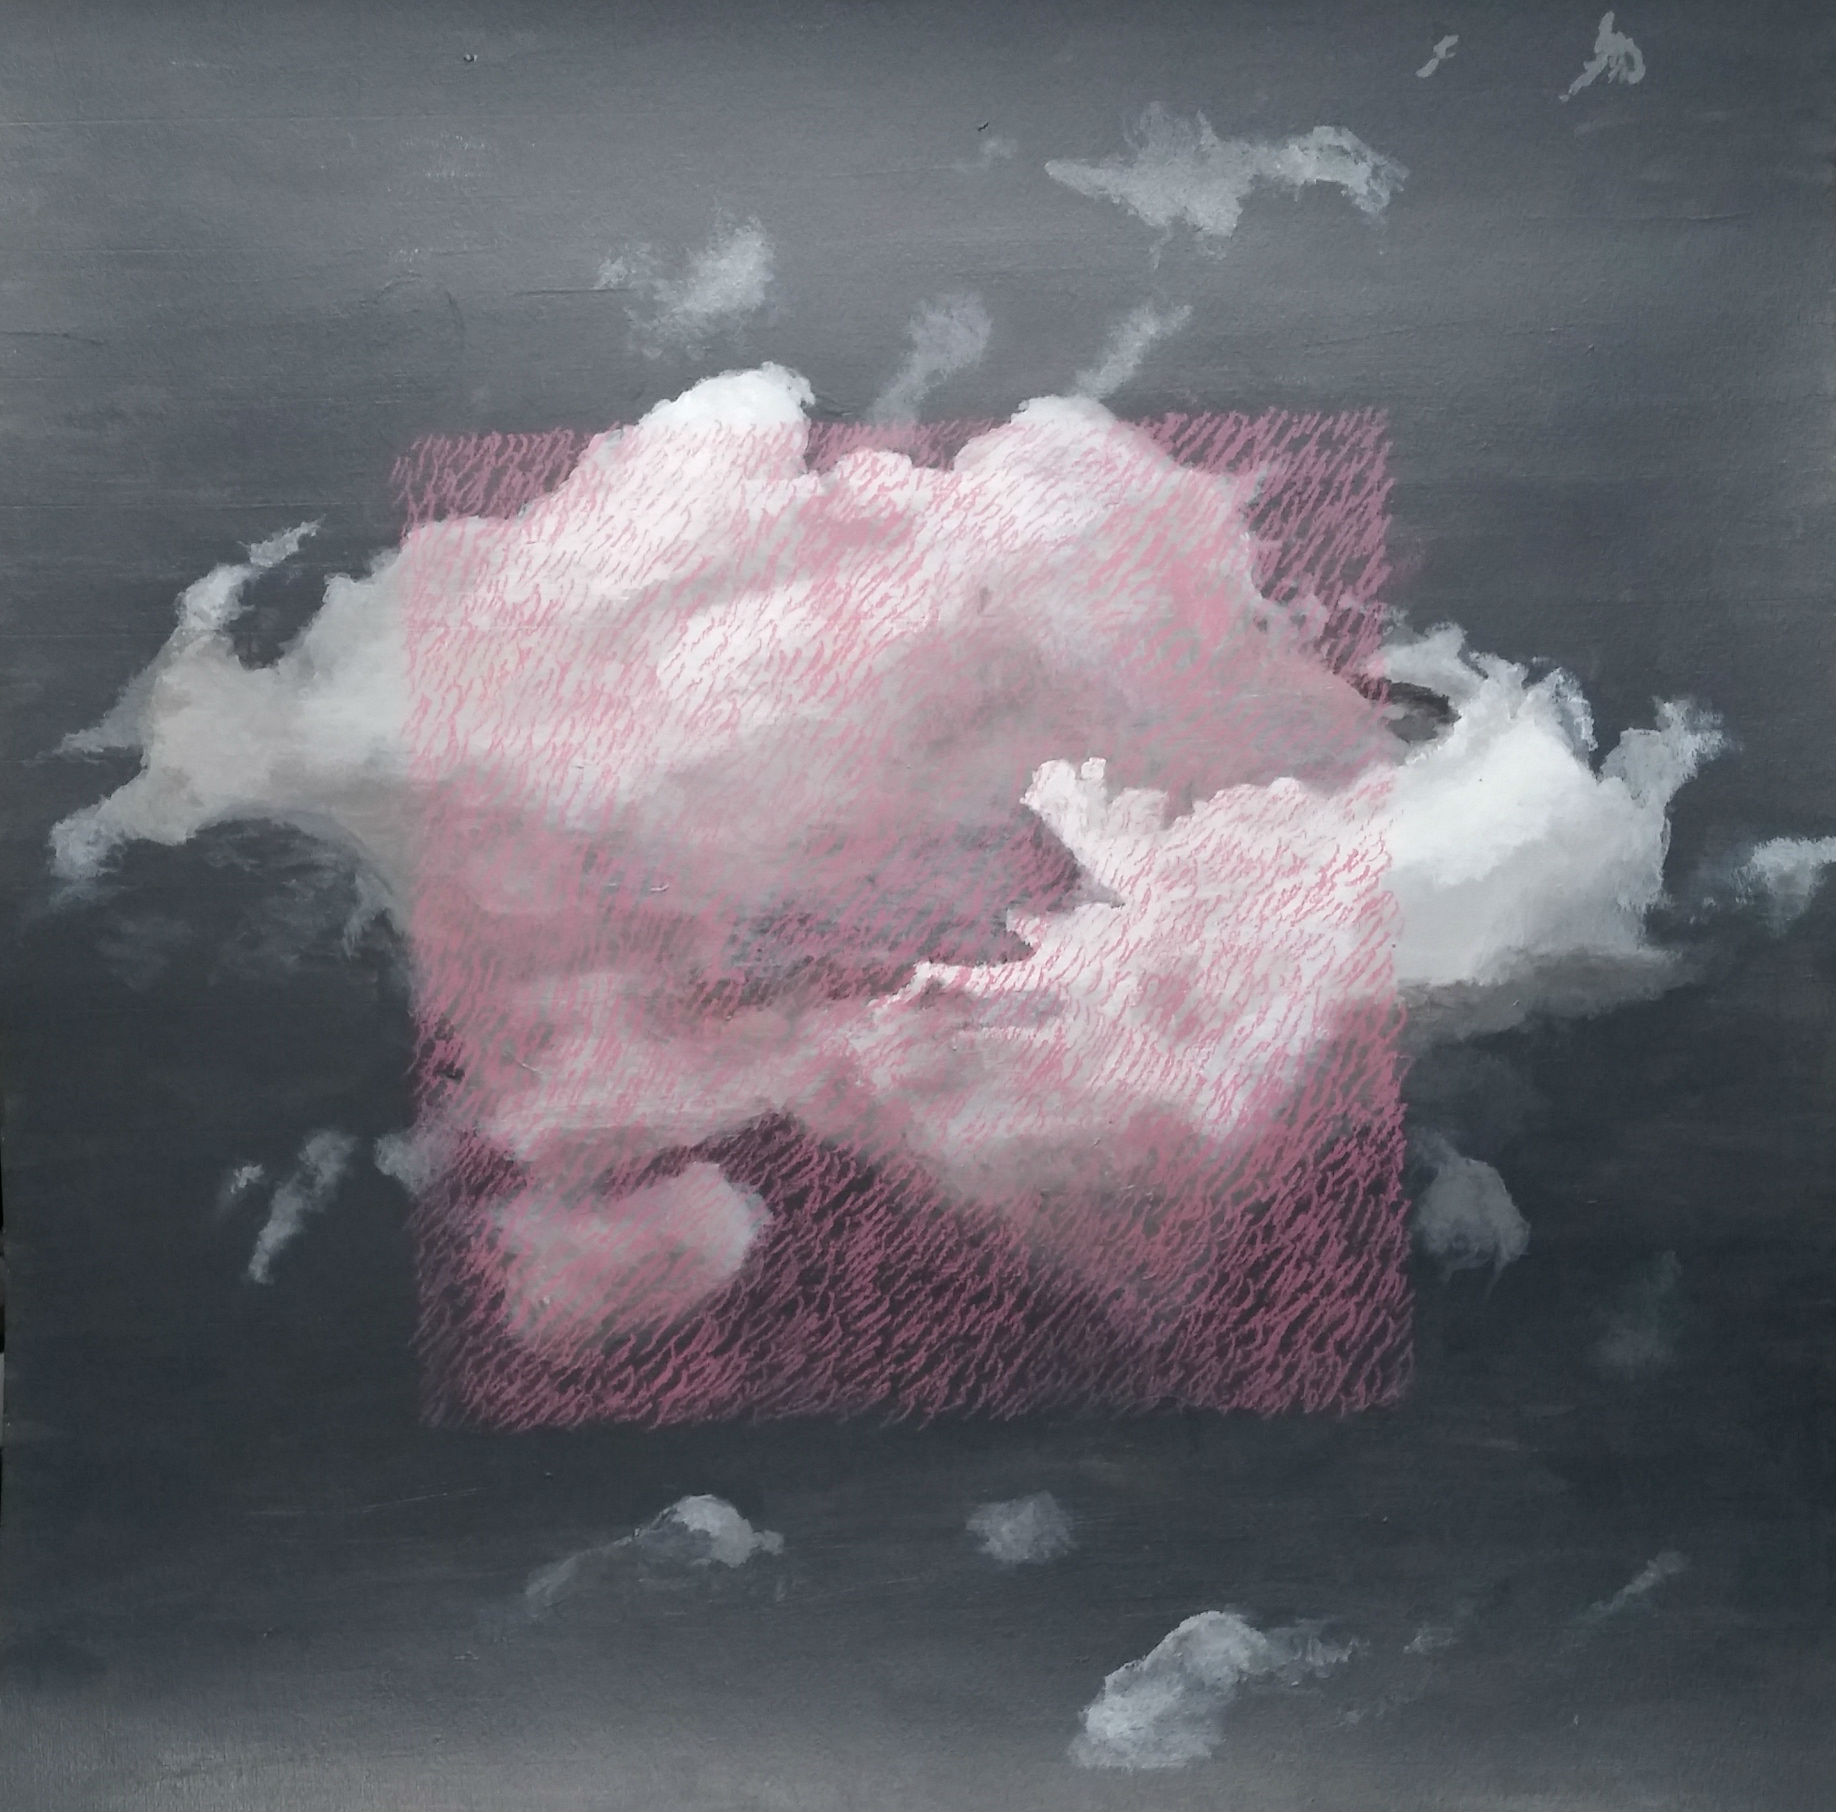 Cloudwithsquare#.jpg